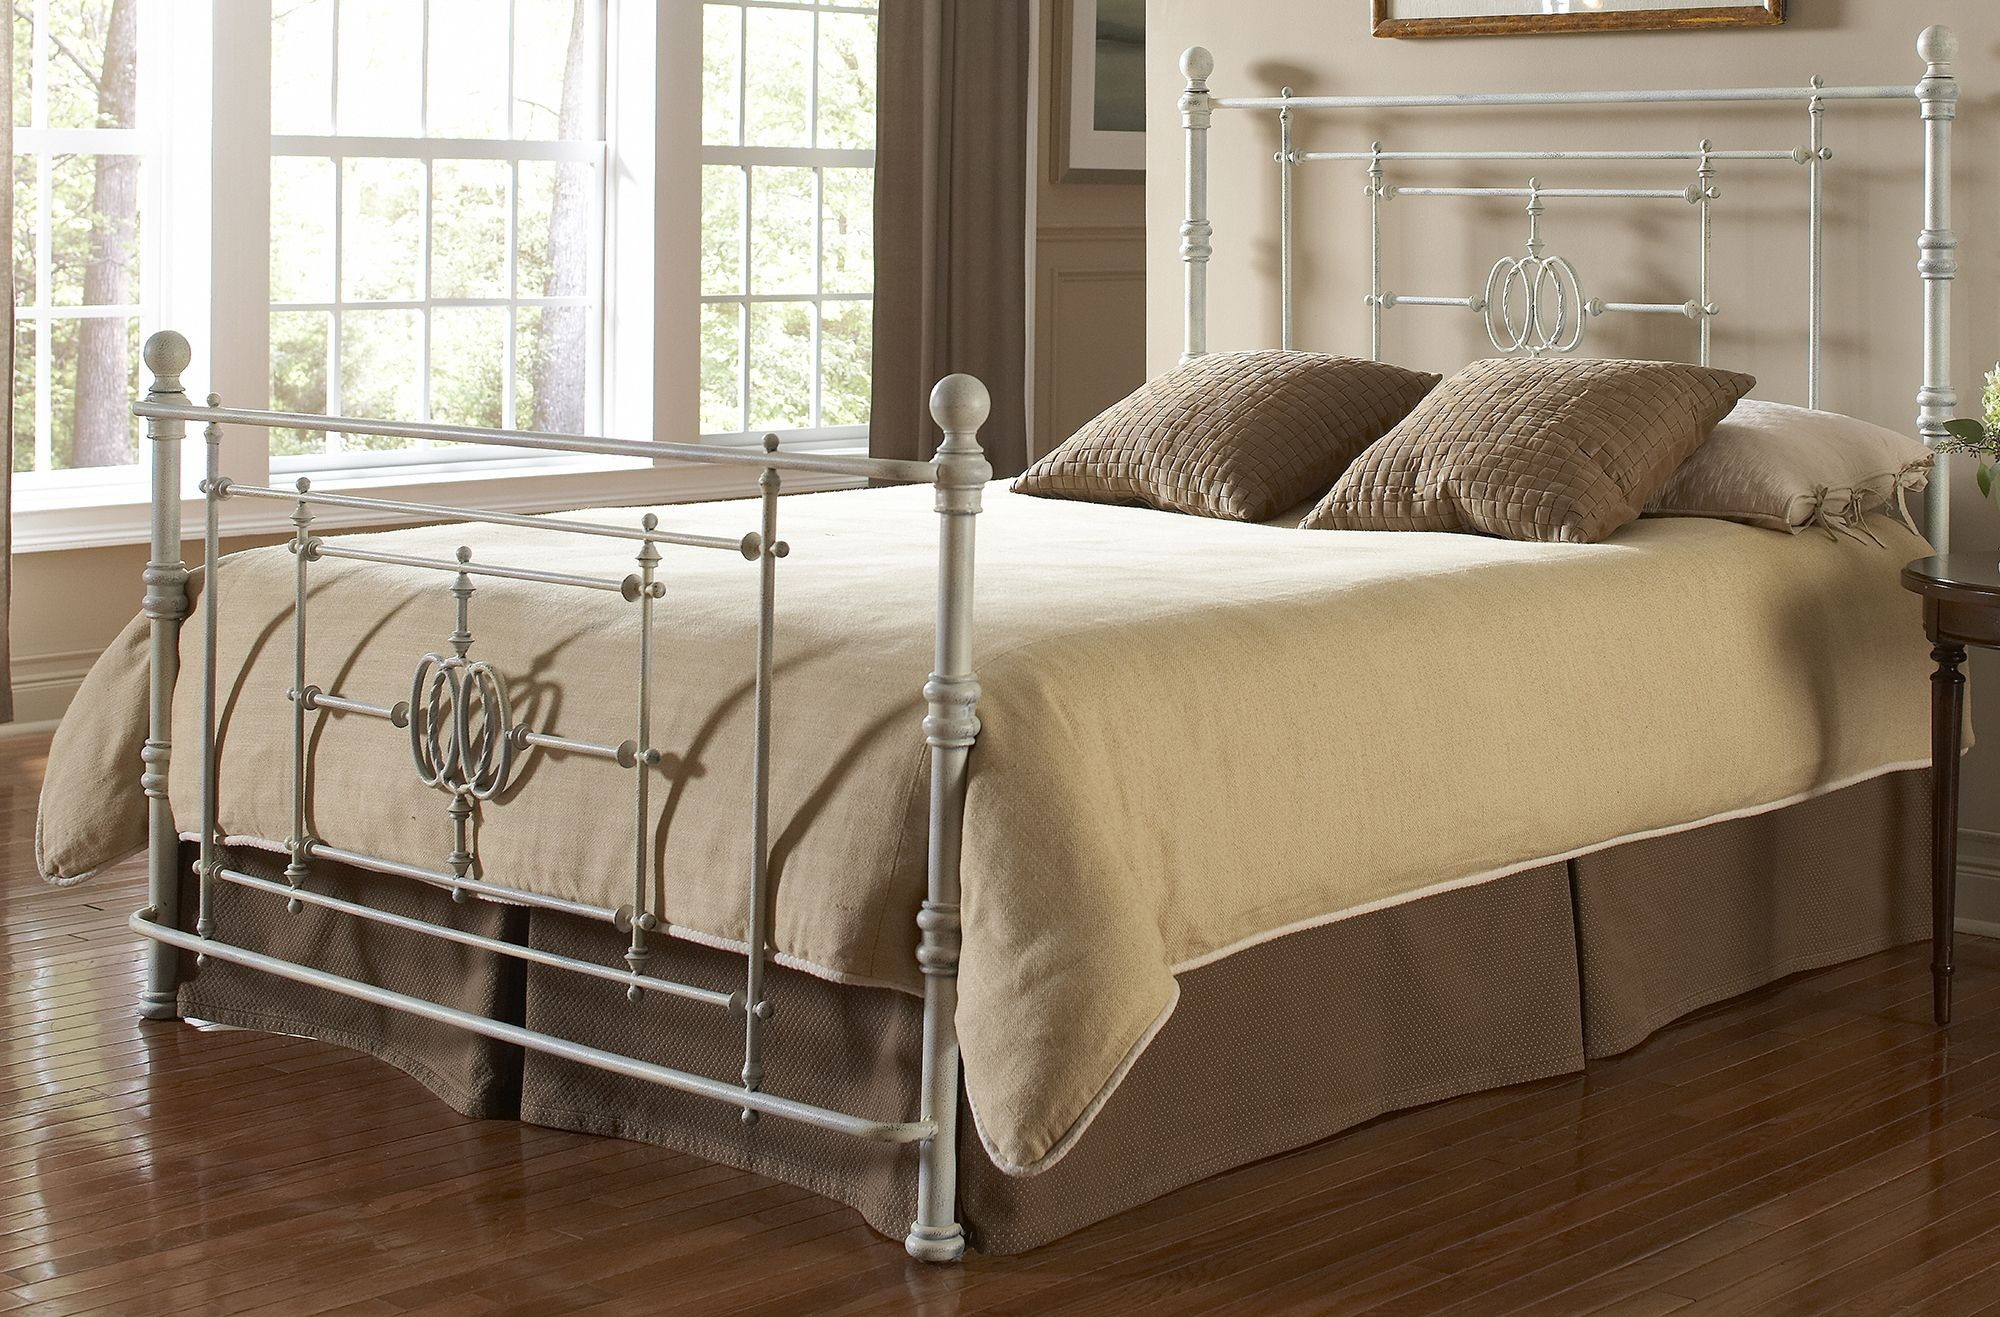 Lafayette Distressed White Queen Ornamental Poster Bed B11145 Fashion Bed Group